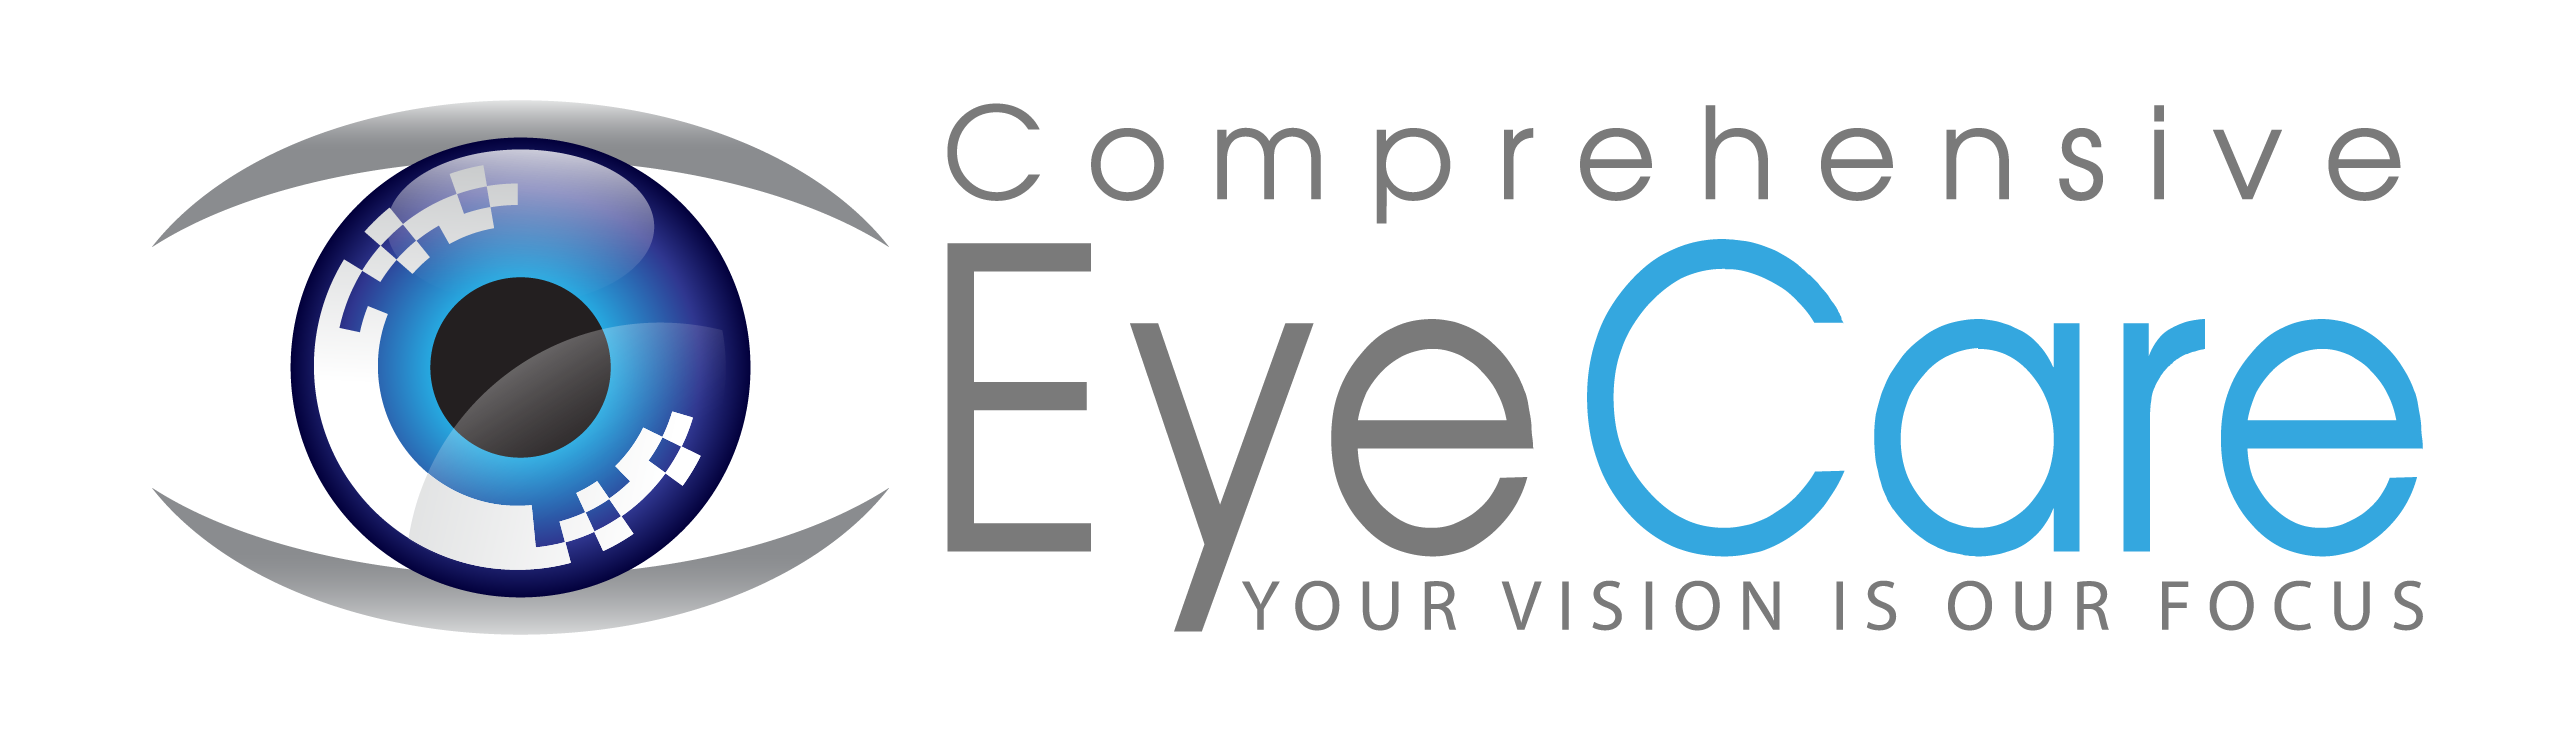 Focus clipart eyesight. Colonial heights optometrist comprehensive